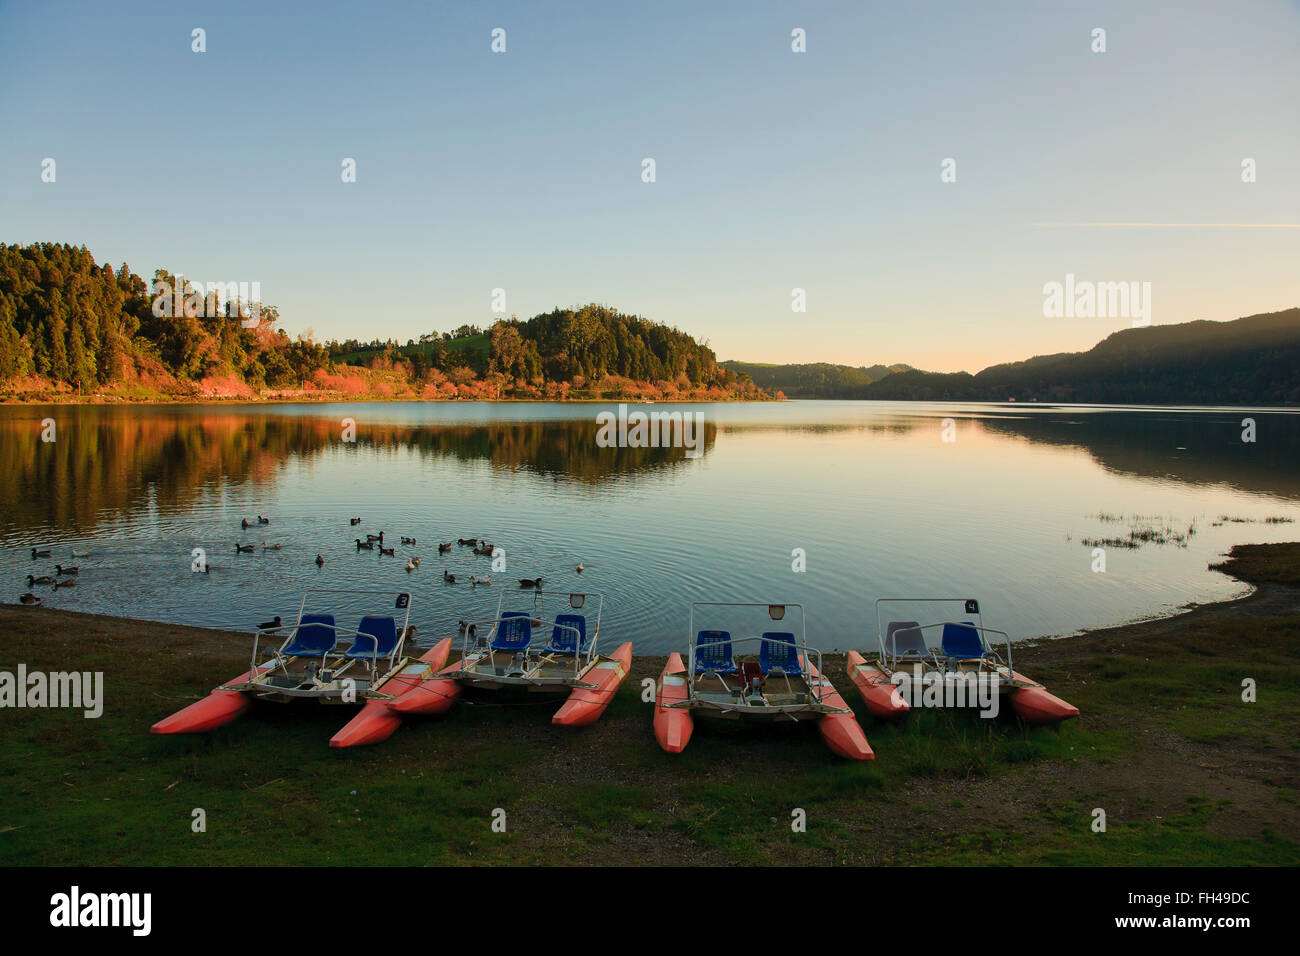 Furnas lake at sunset. Sao Miguel island, Azores islands, Portugal. - Stock Image